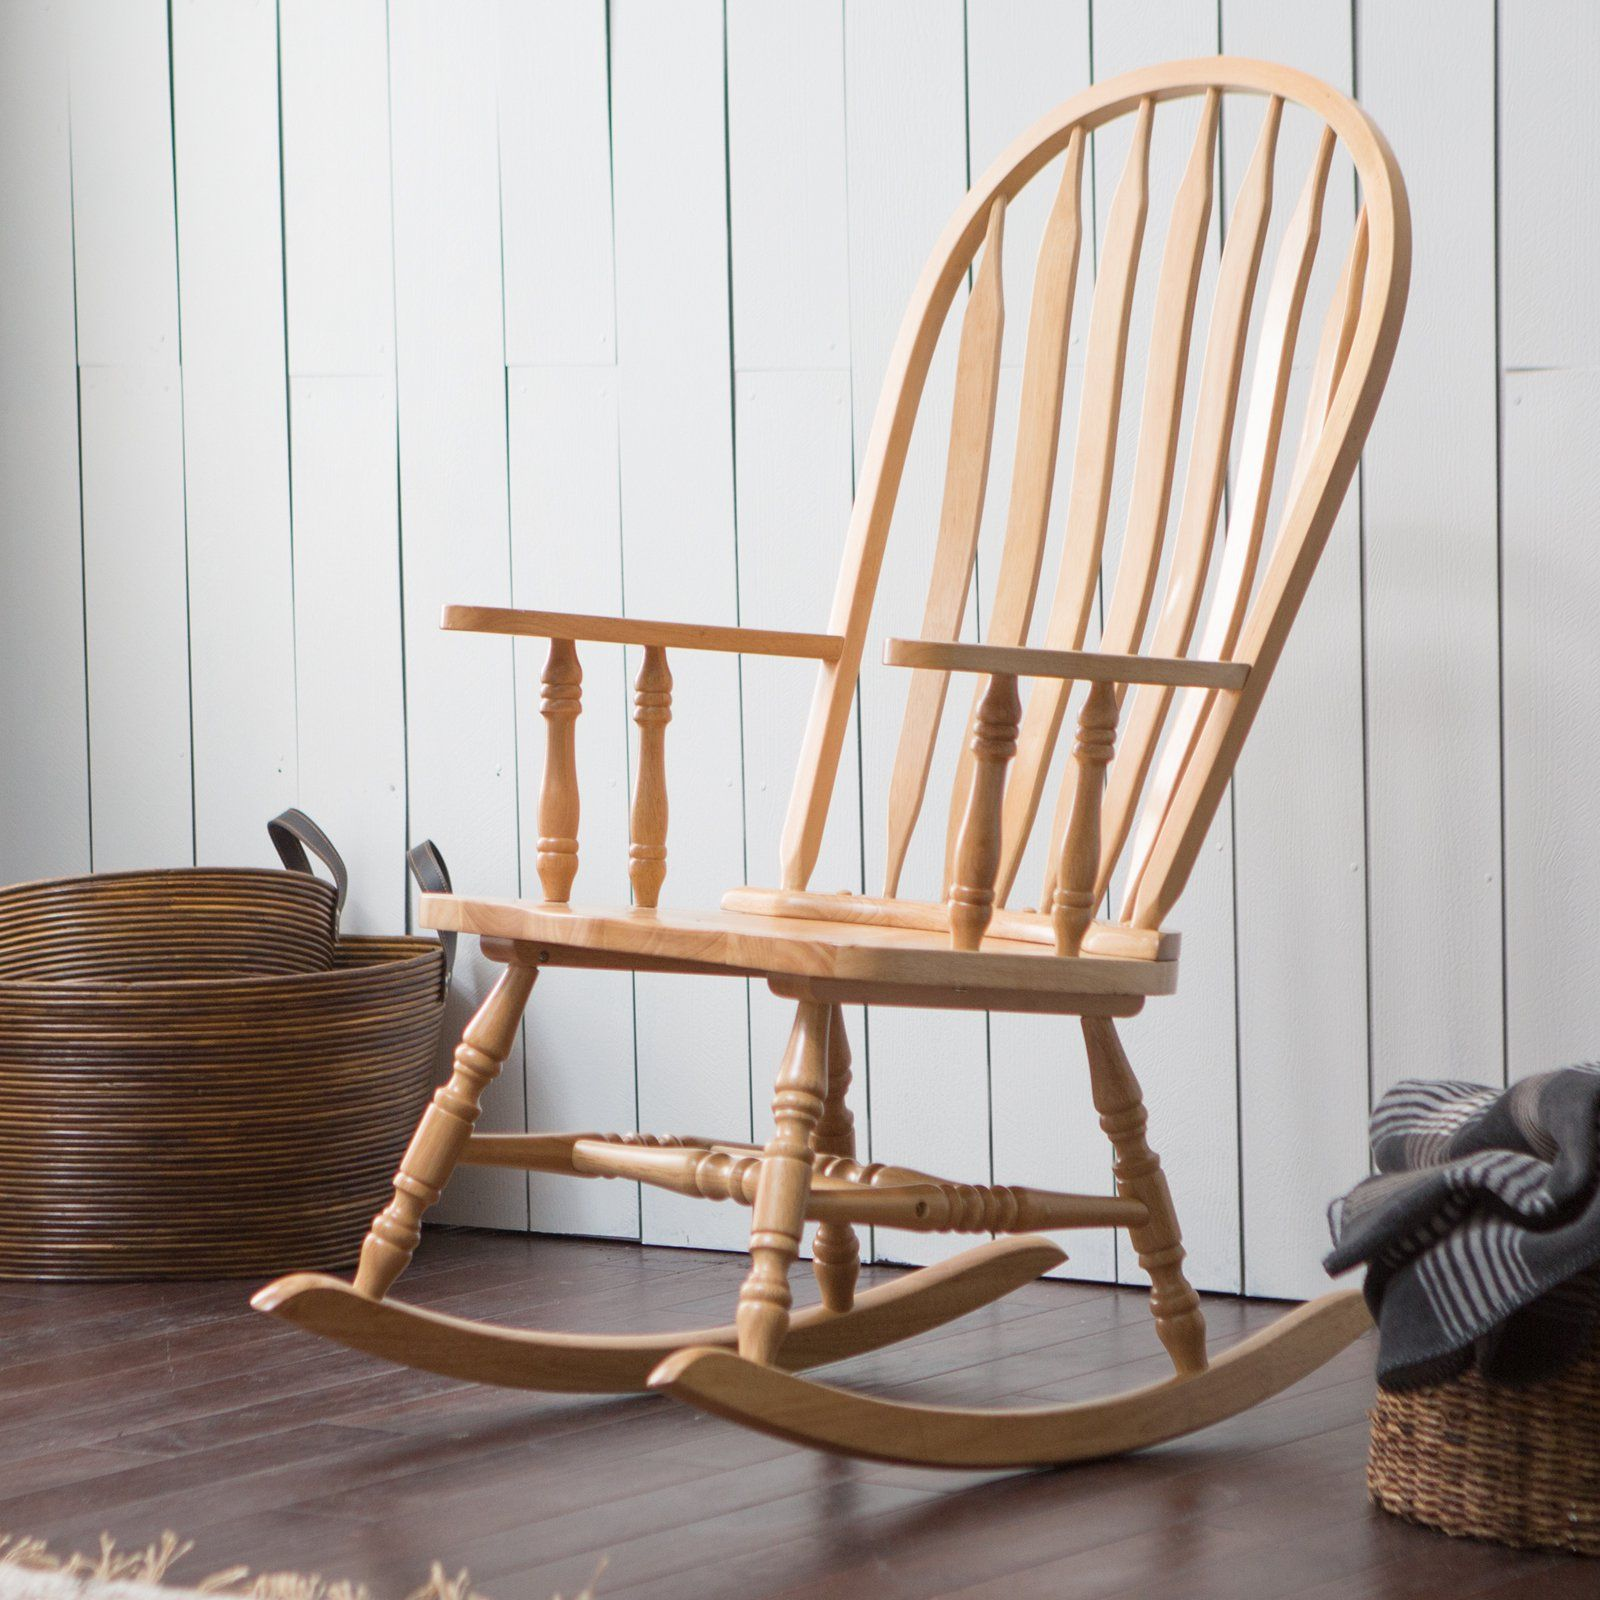 Belham Living Windsor Indoor Wood Rocking Chair Natural Chairs At Hayneedle